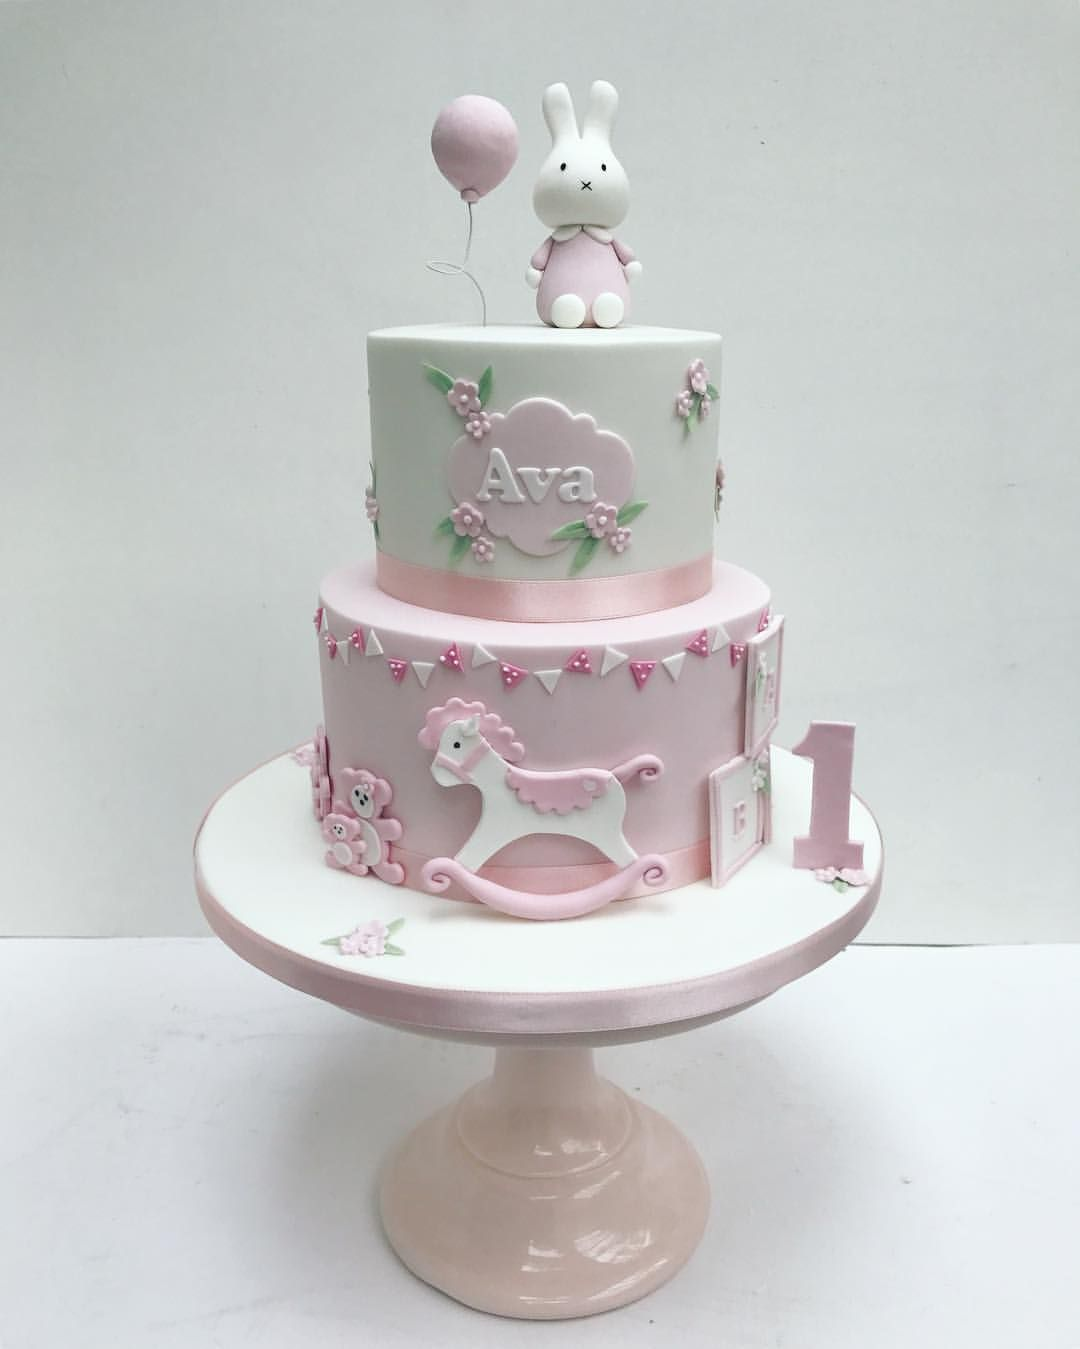 Brilliant Miffy Pink Bunny Cake For Little Girls First Birthday By Sweet Personalised Birthday Cards Veneteletsinfo